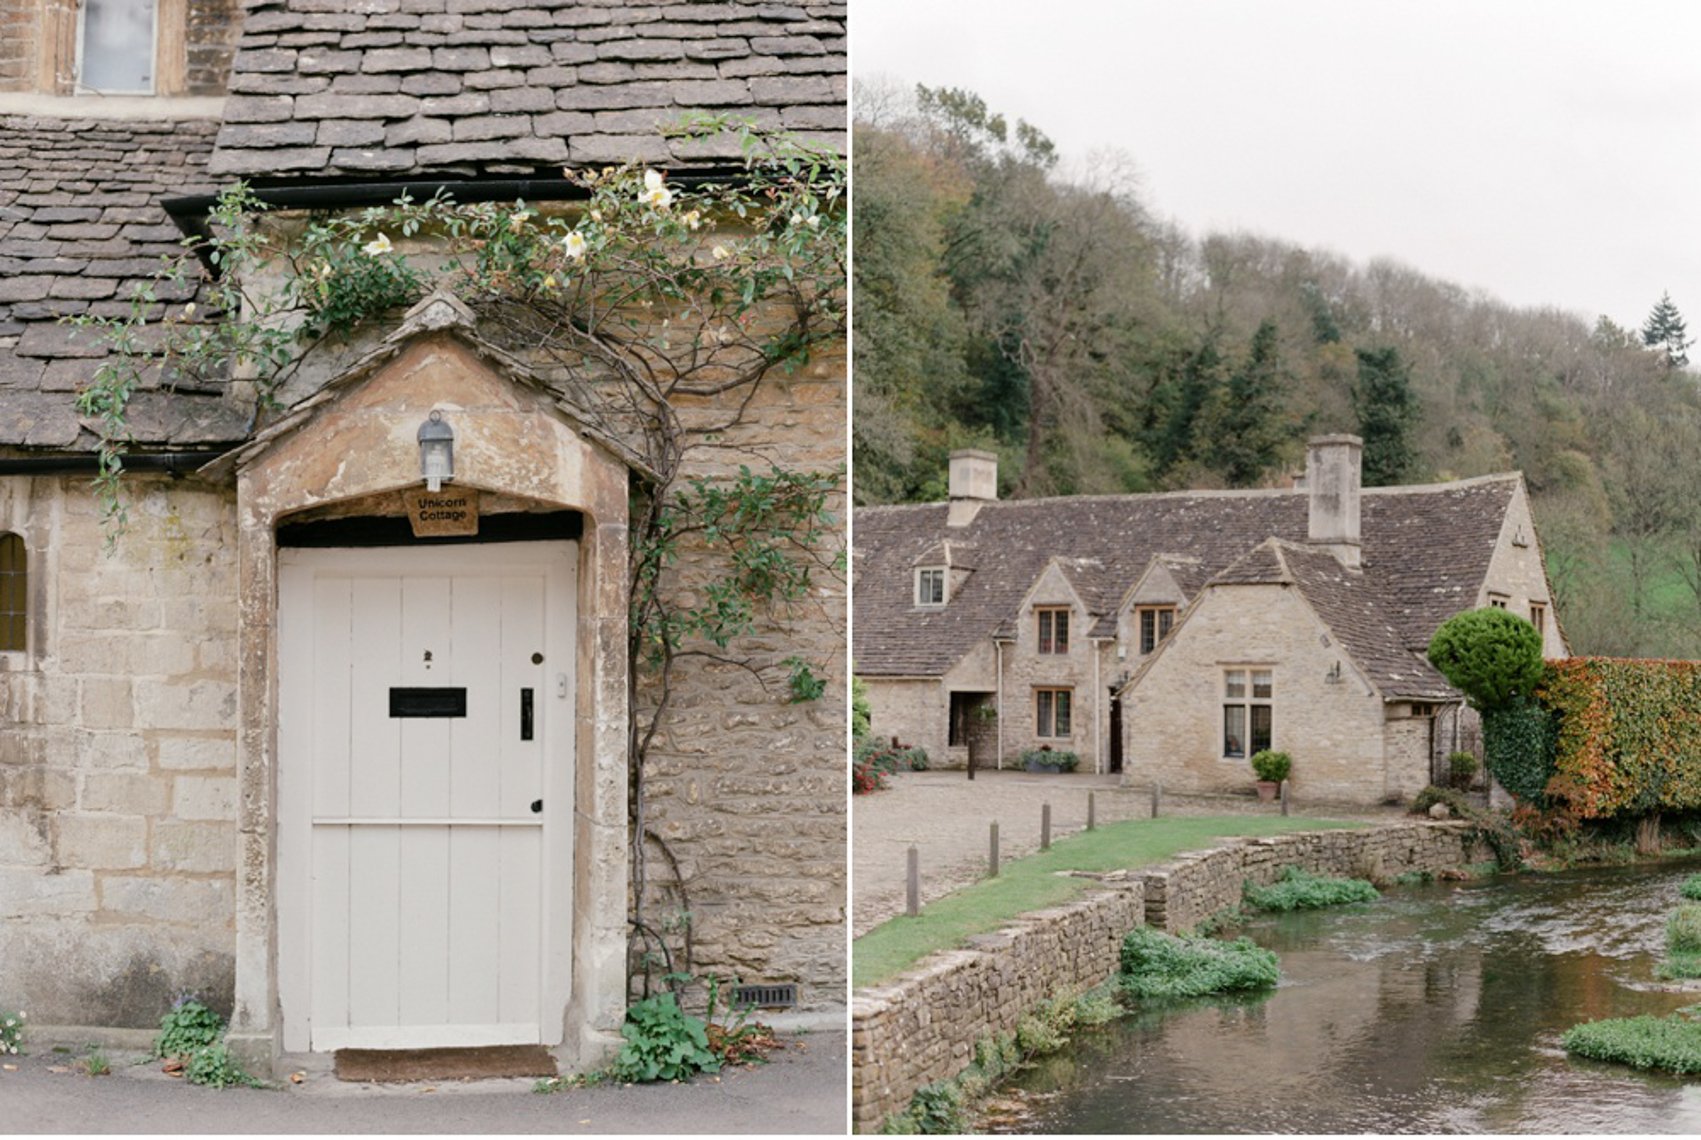 Cotswolds_WeddingPhotographer_UK©MadalinaSheldon_13.jpg